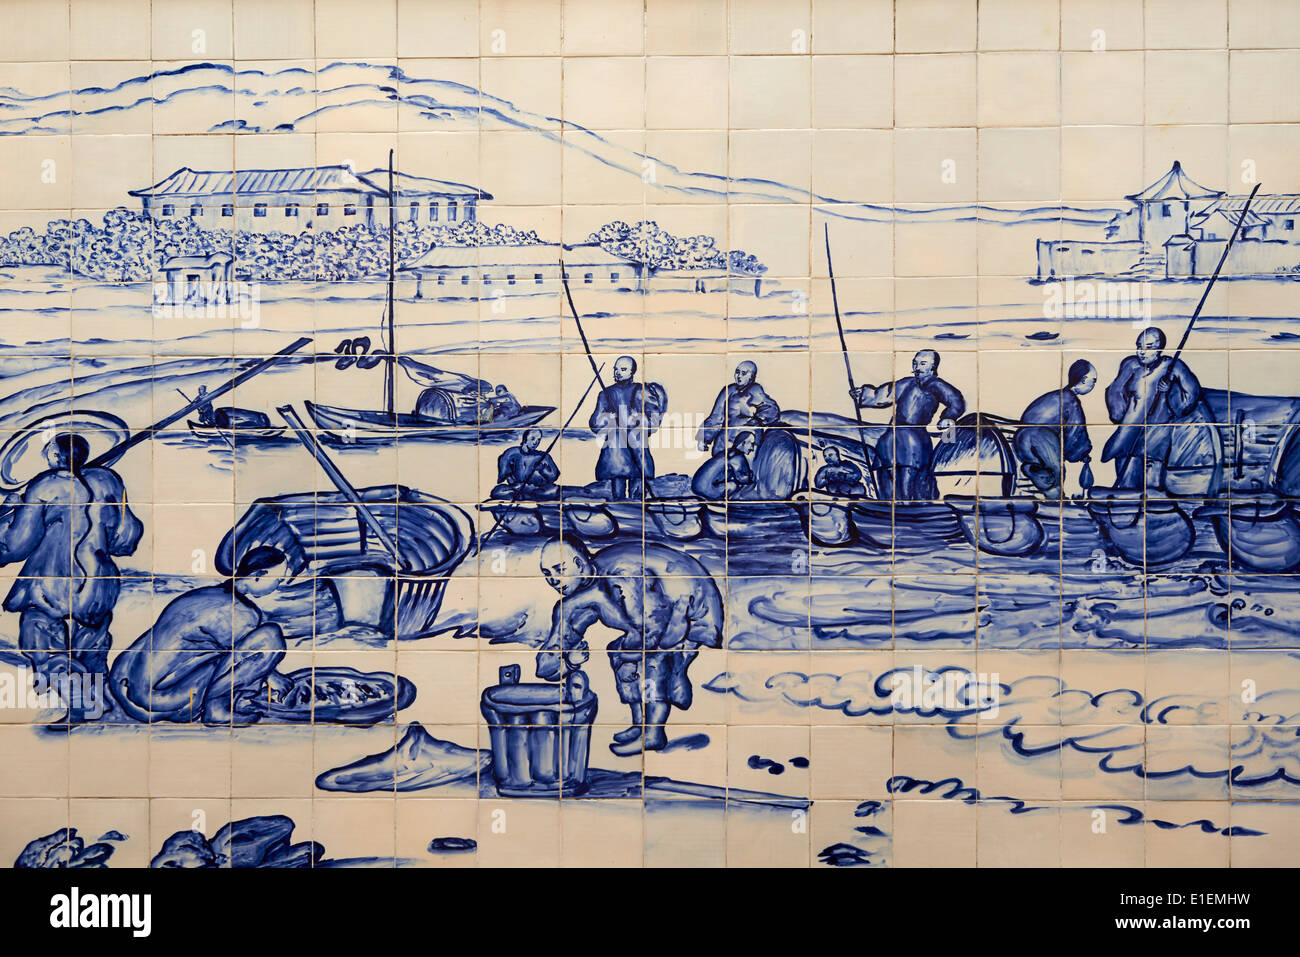 China, Macau, Tiles on the Traversa do Meio, Praia Grande with fishermen from Georges Chinnery, 1837 - Stock Image